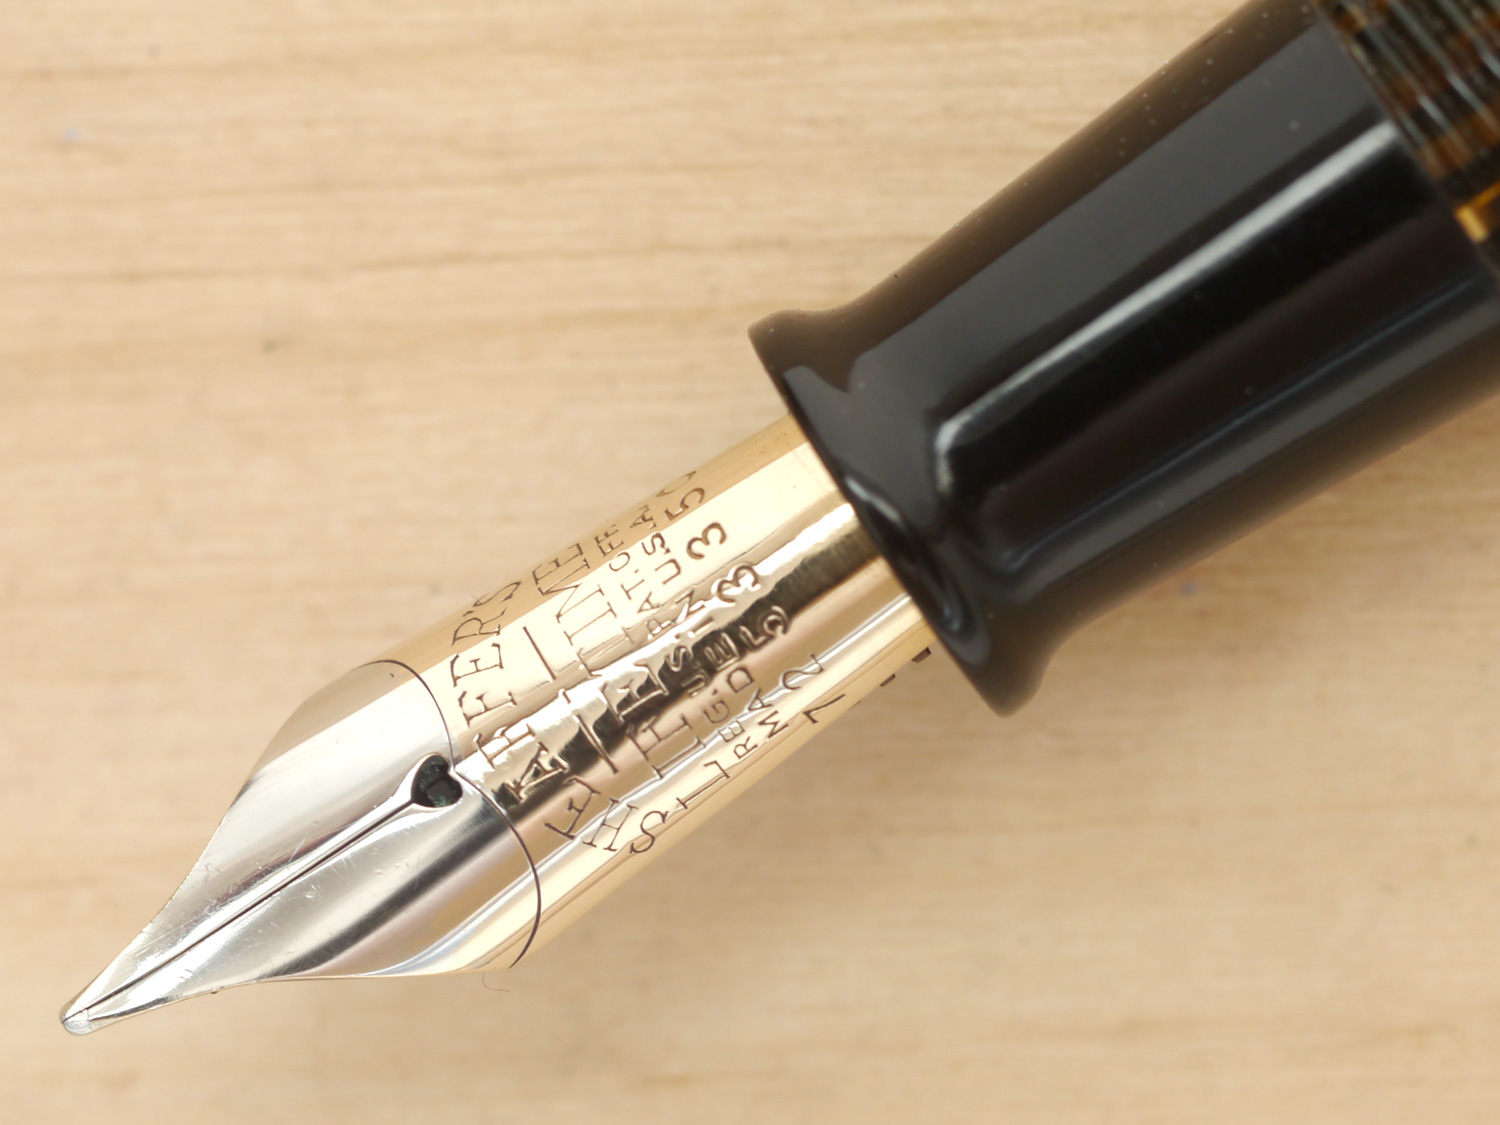 Sheaffer Balance Vac Full-Size Fountain Pen, Golden Brown, M, nib close-up